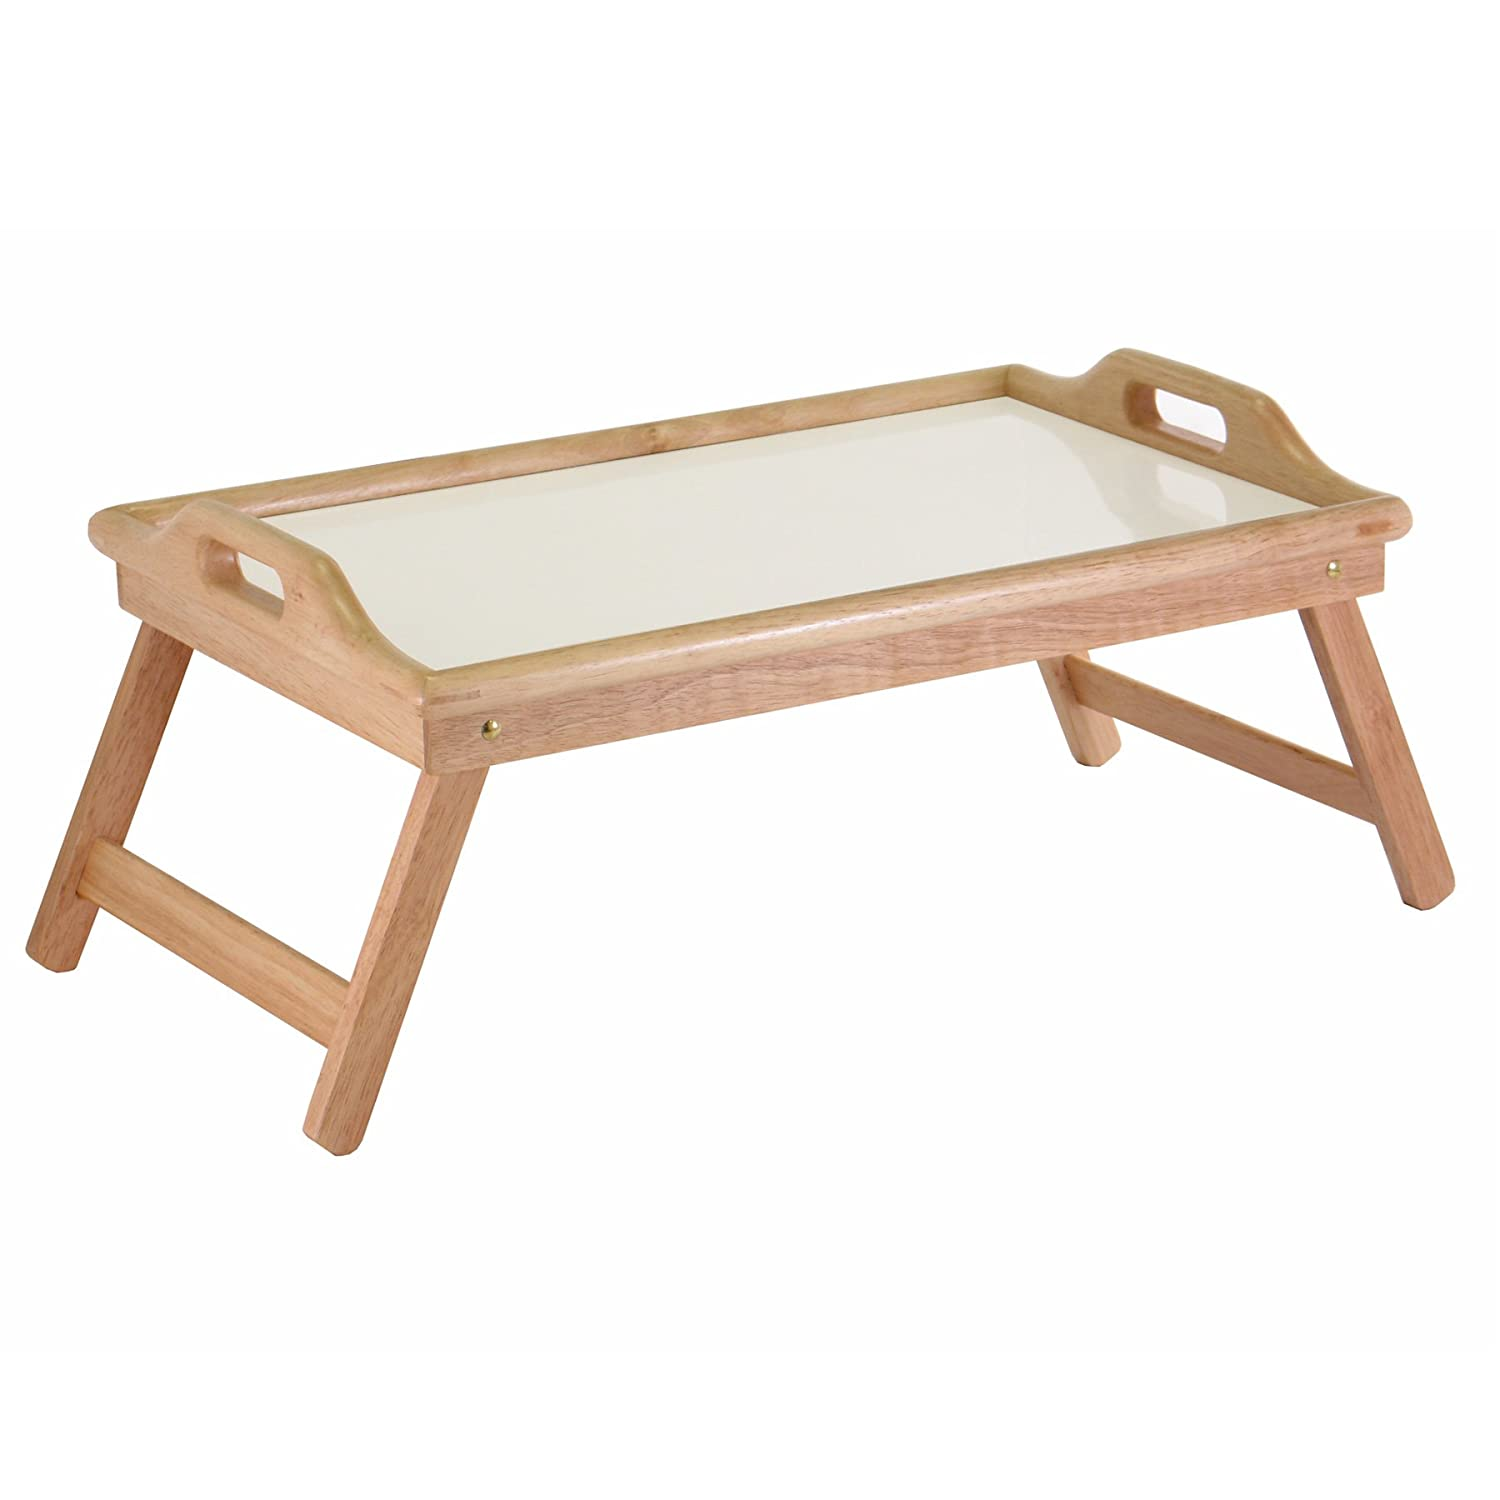 Superb img of Solid Wooden Bed Tray Serving Dishes Lap Desk Laptop Stand Home Office  with #4F3A11 color and 1500x1500 pixels